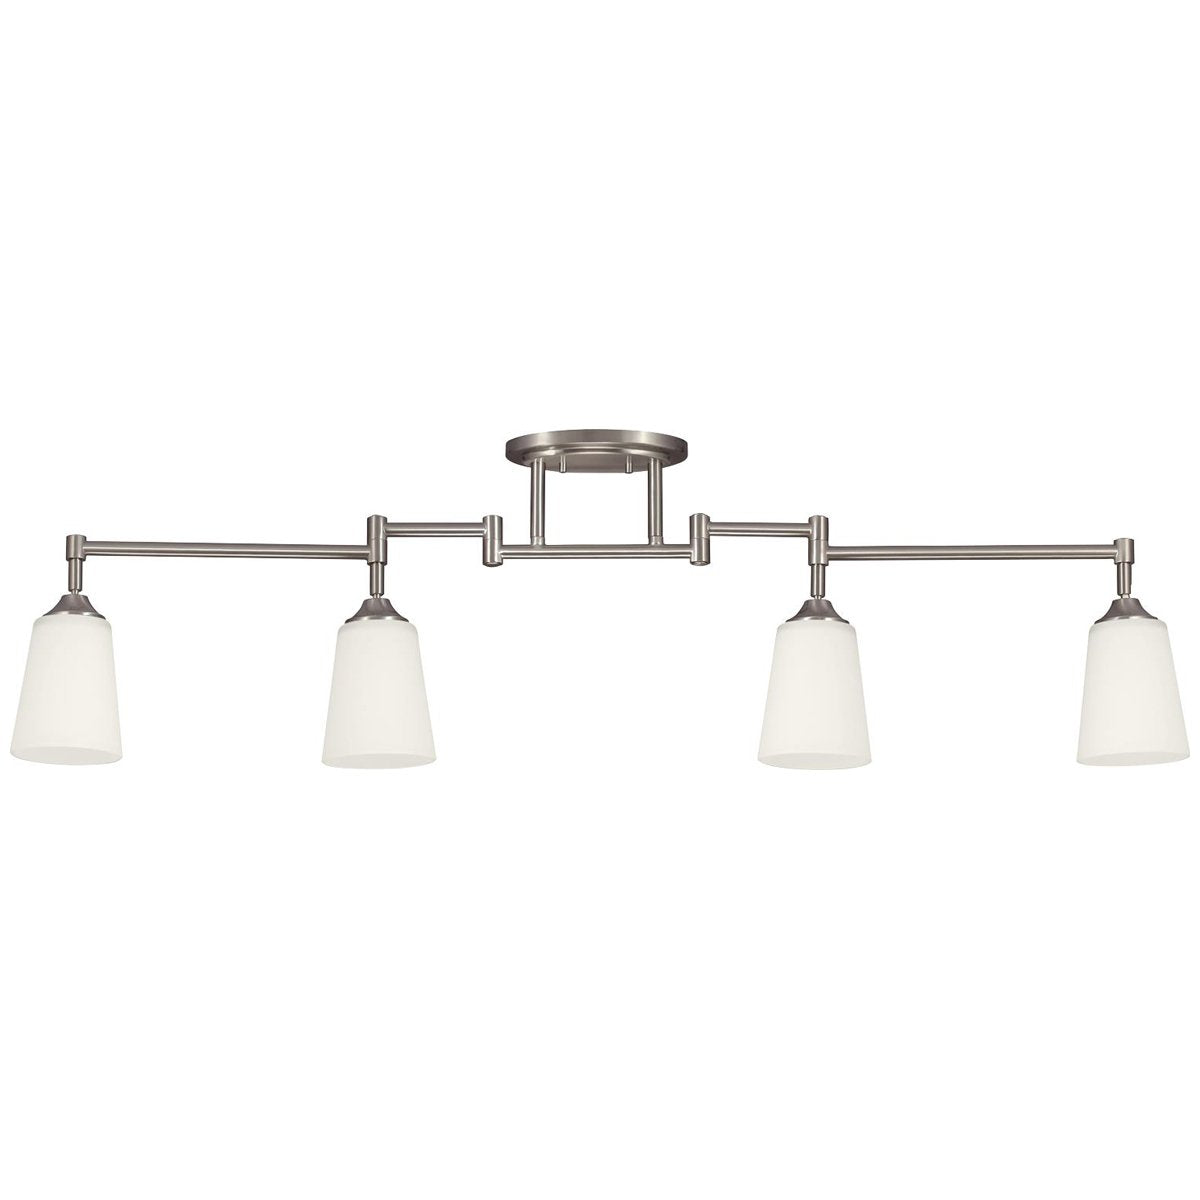 Sea Gull Lighting 4-Light Track Lighting Kit